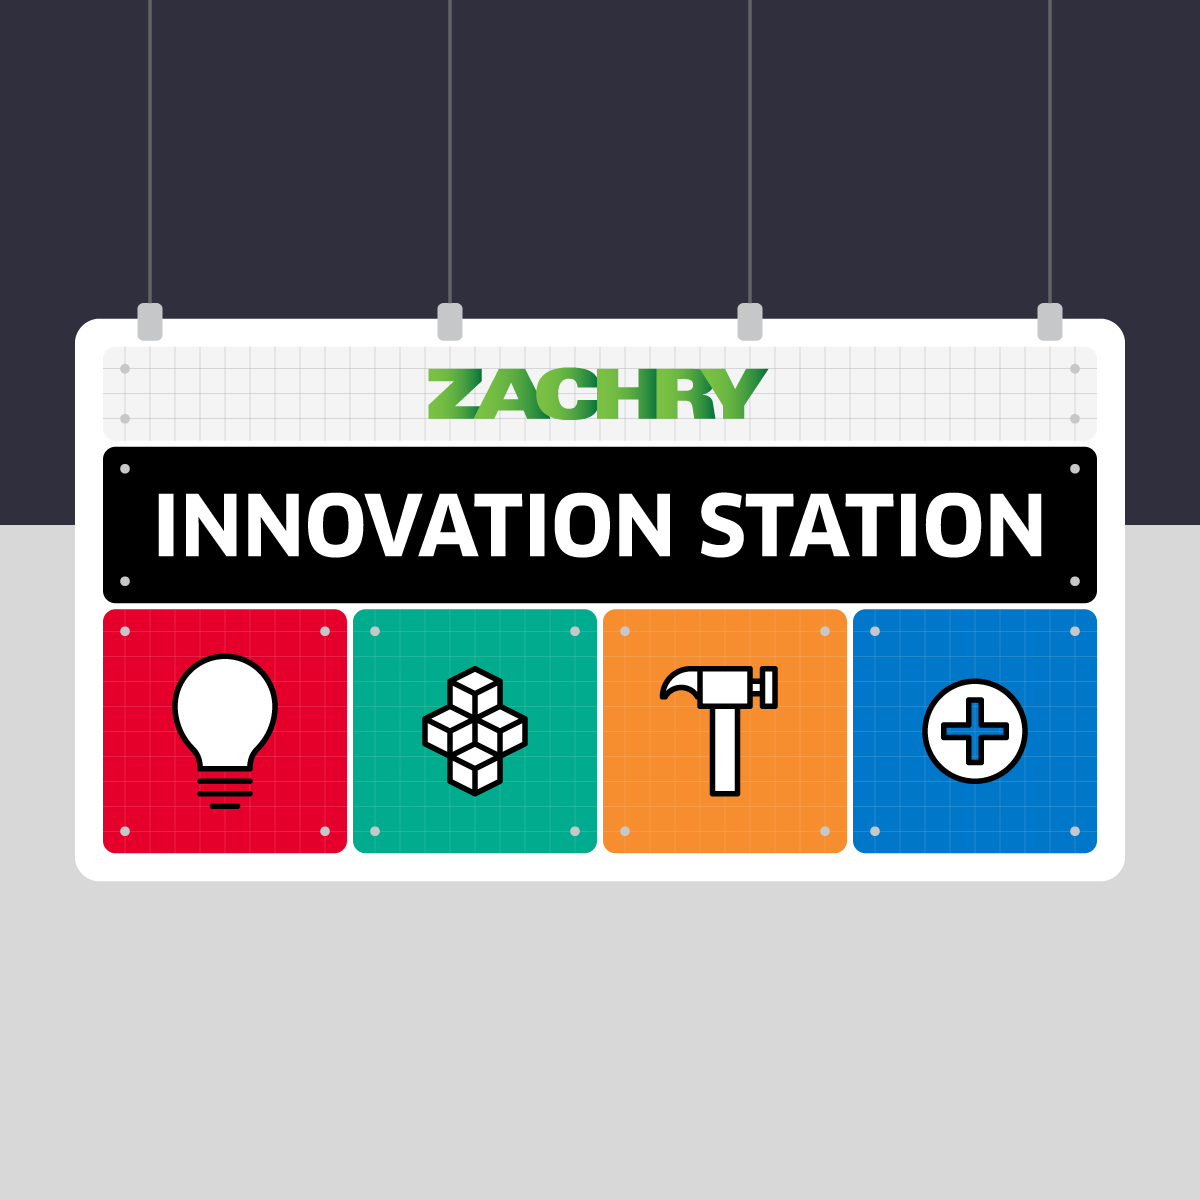 Innovation Station gallery sign